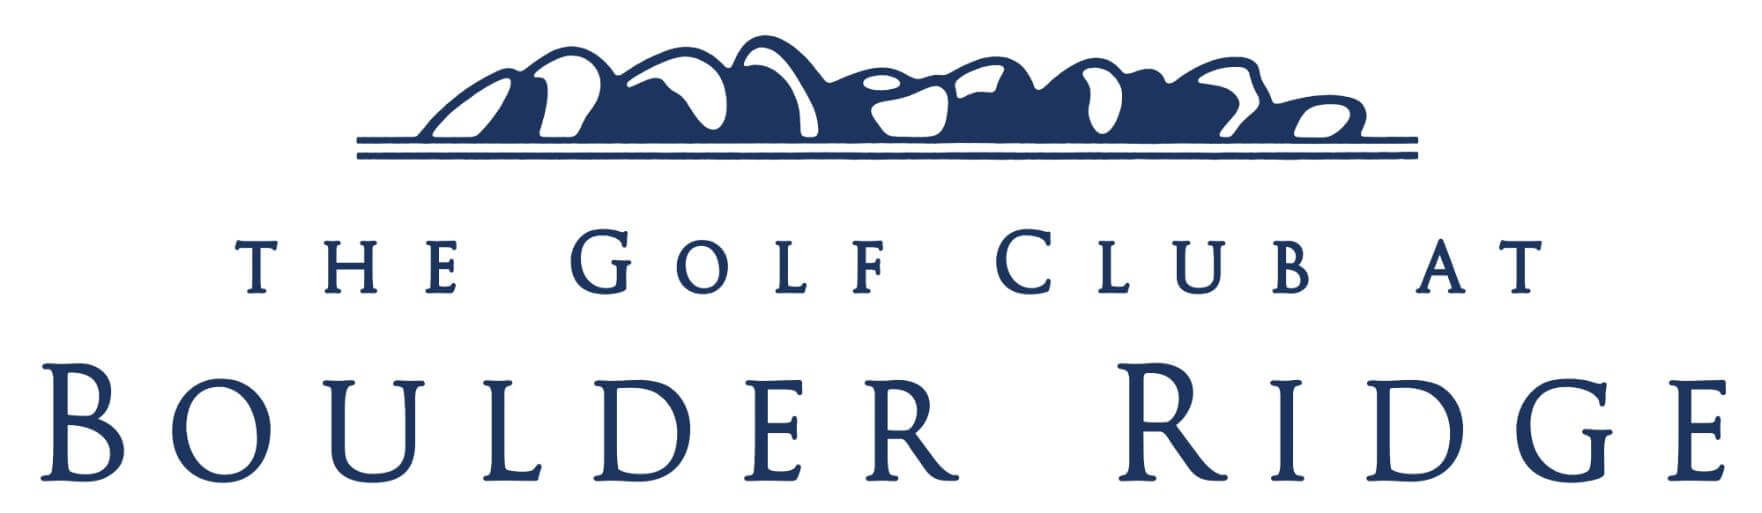 Boulder Ridge Golf Club